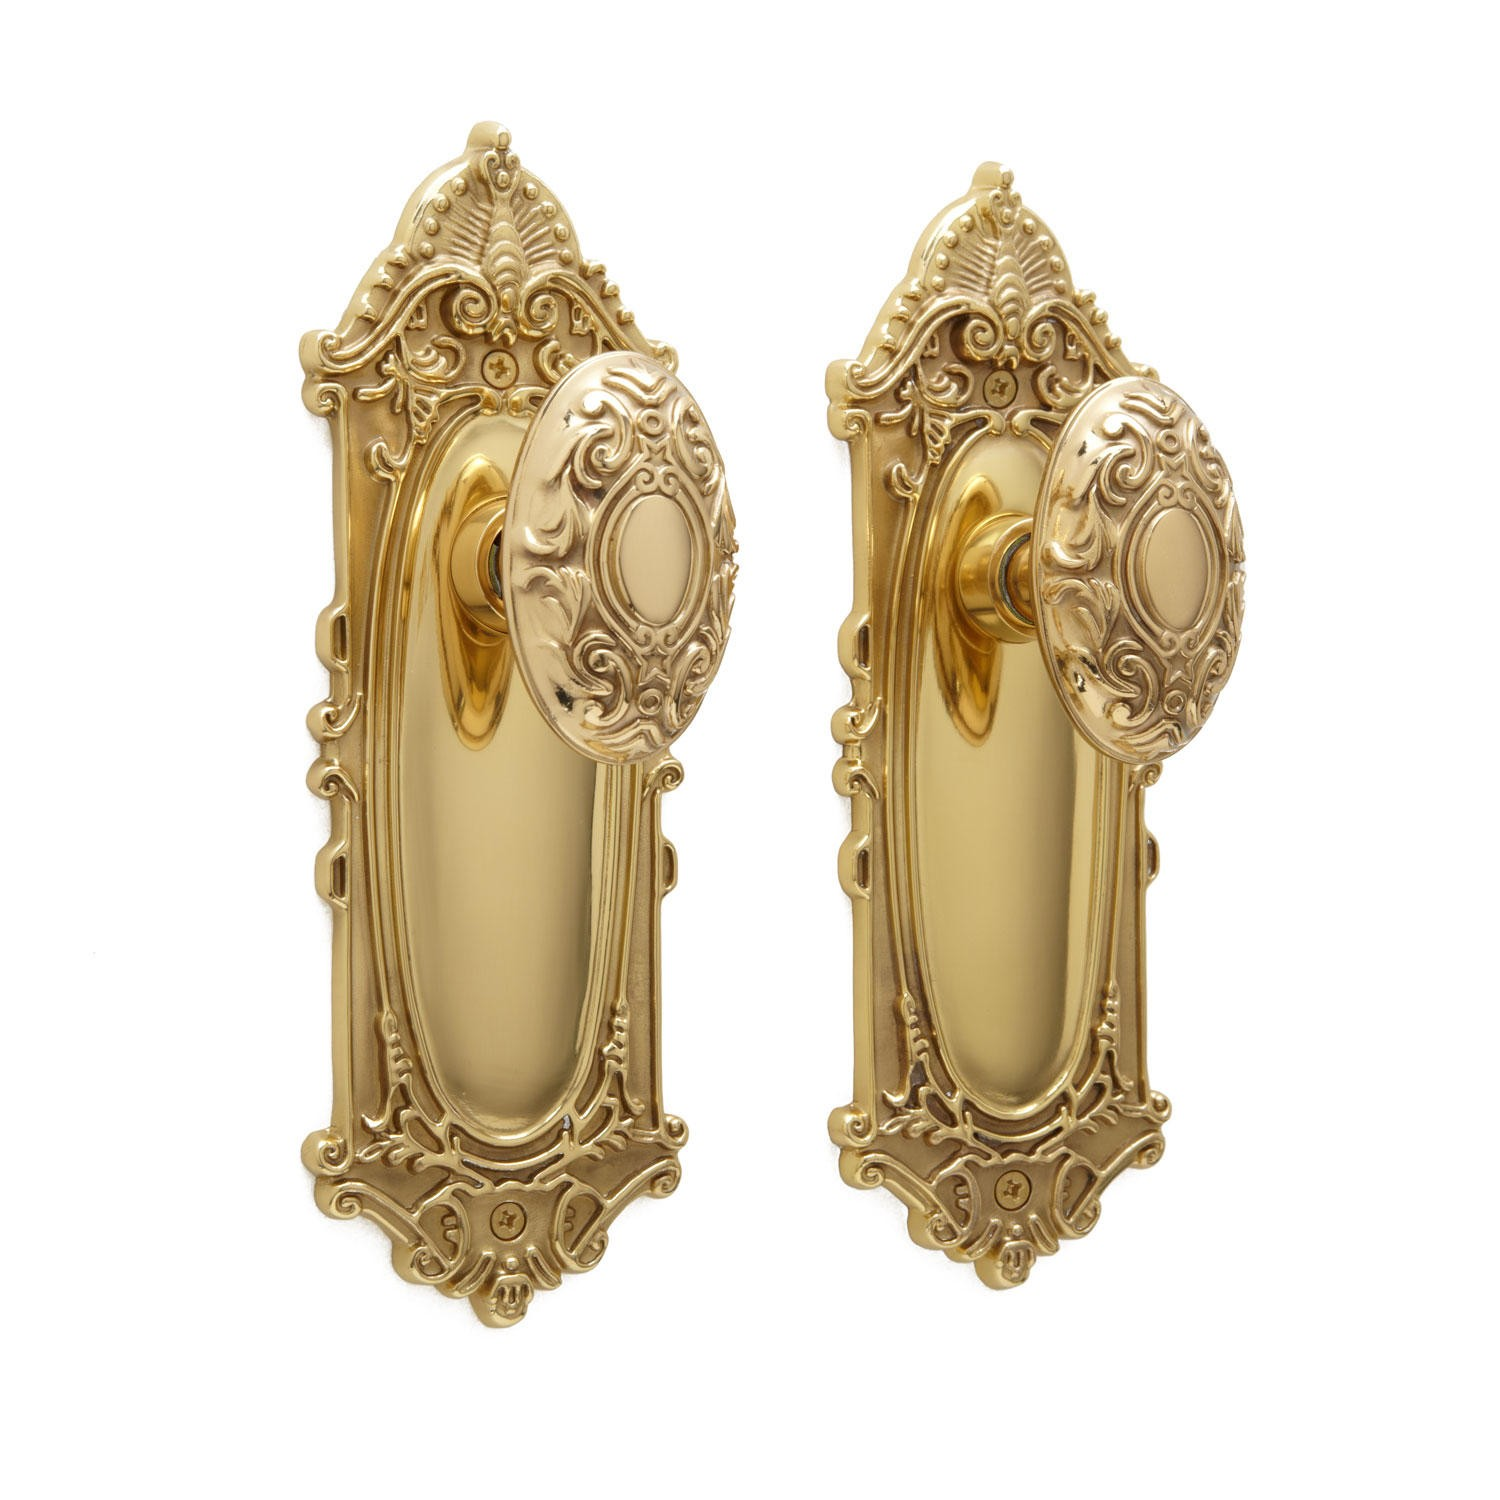 Victorian Door Knob & Plate Set - Privacy, Passage and Dummy - Hardware